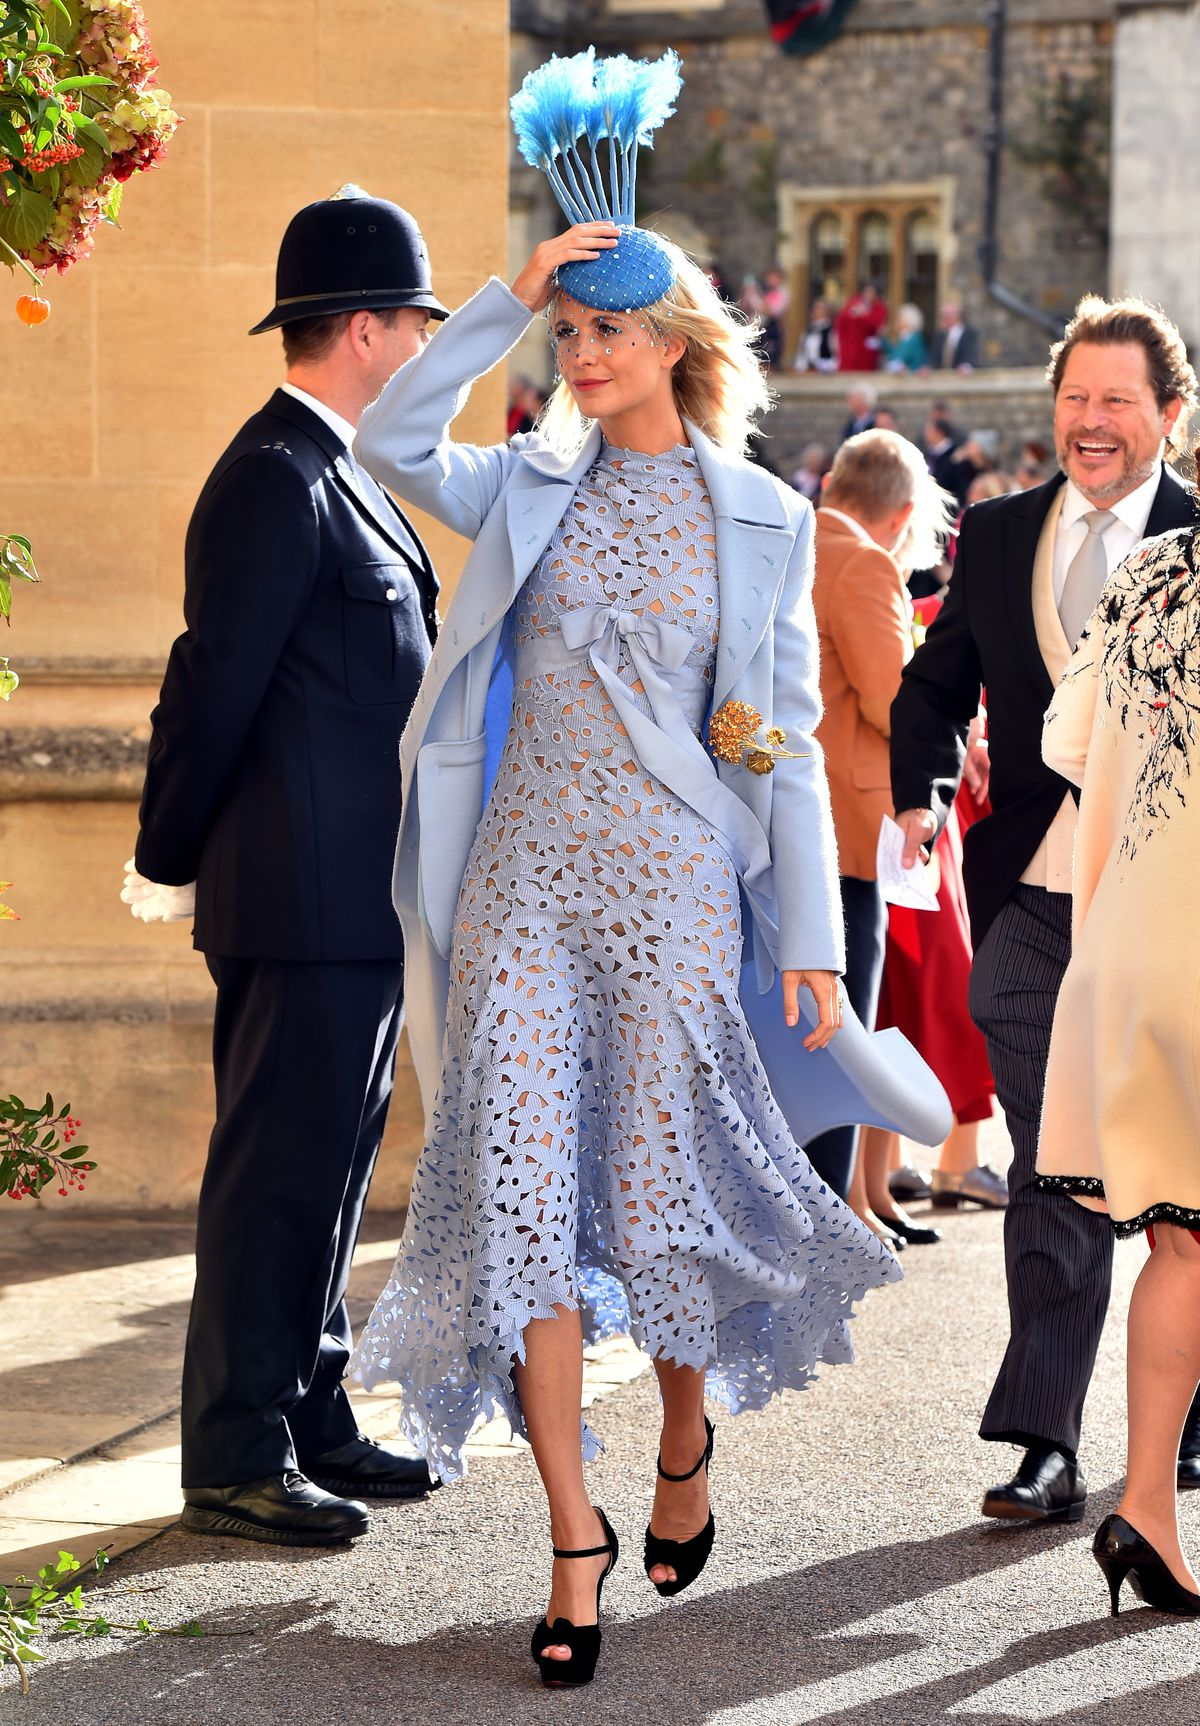 Poppy Delevingne holds a hand to her head to keep her hat in place.